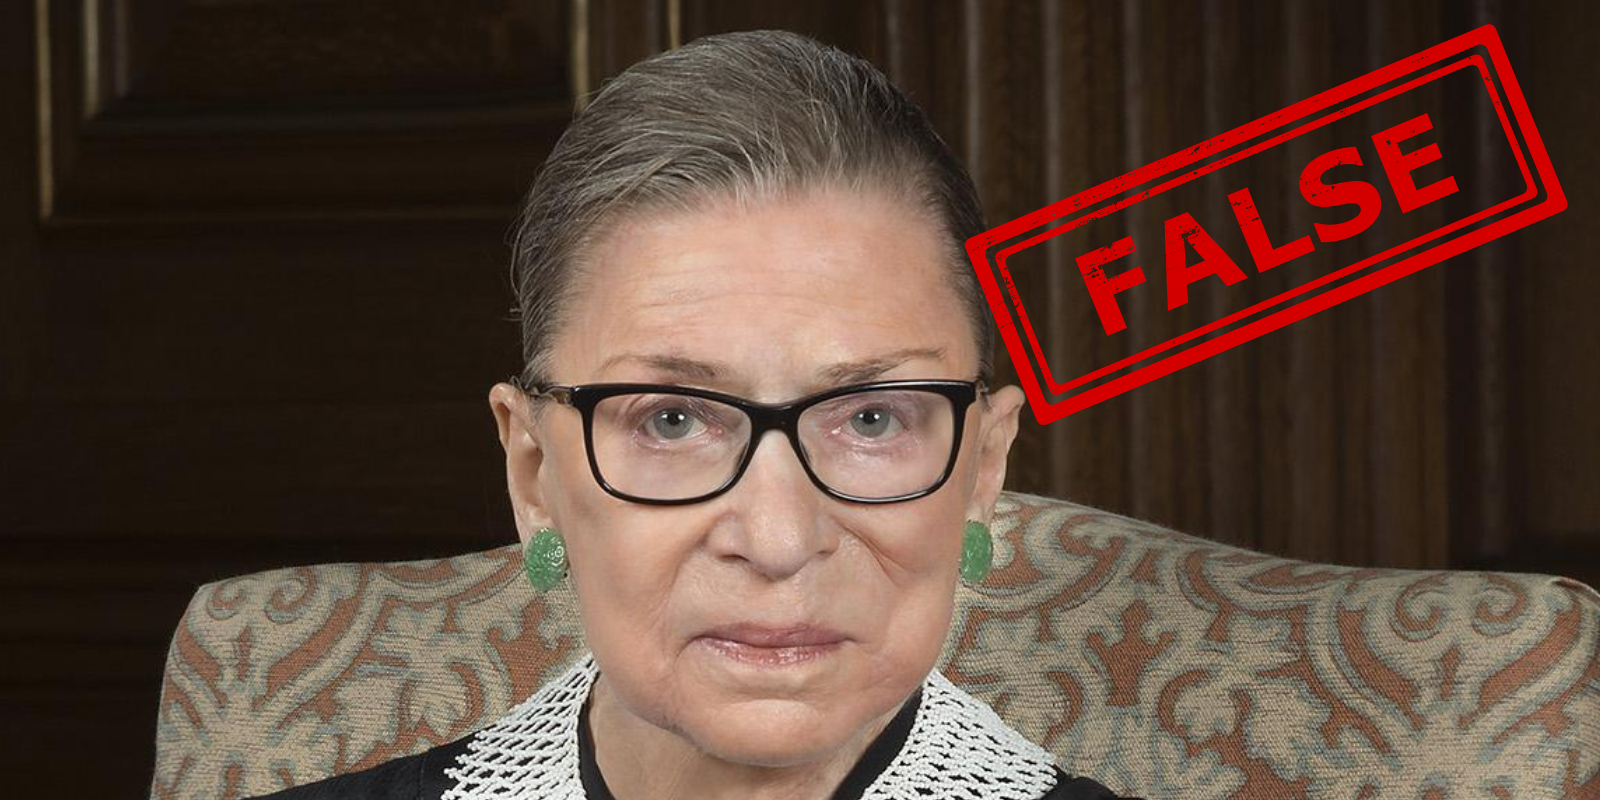 USA Today fact checks The Babylon Bee over satire about raising RBG from the grave